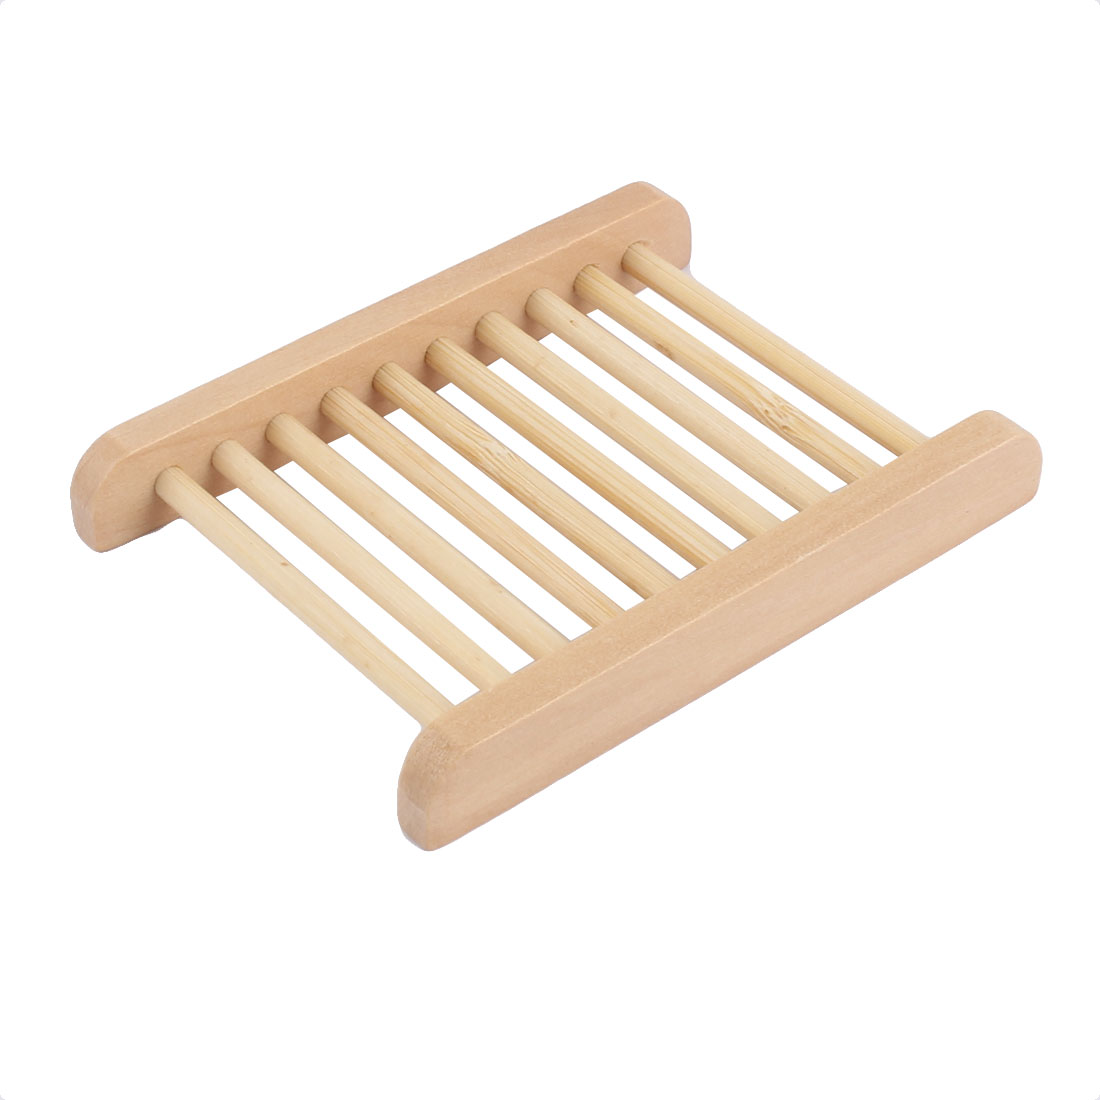 Bathroom Natural Wooden Shower Soap Holder Rack Strainer Tray 11.5 x 8.5cm